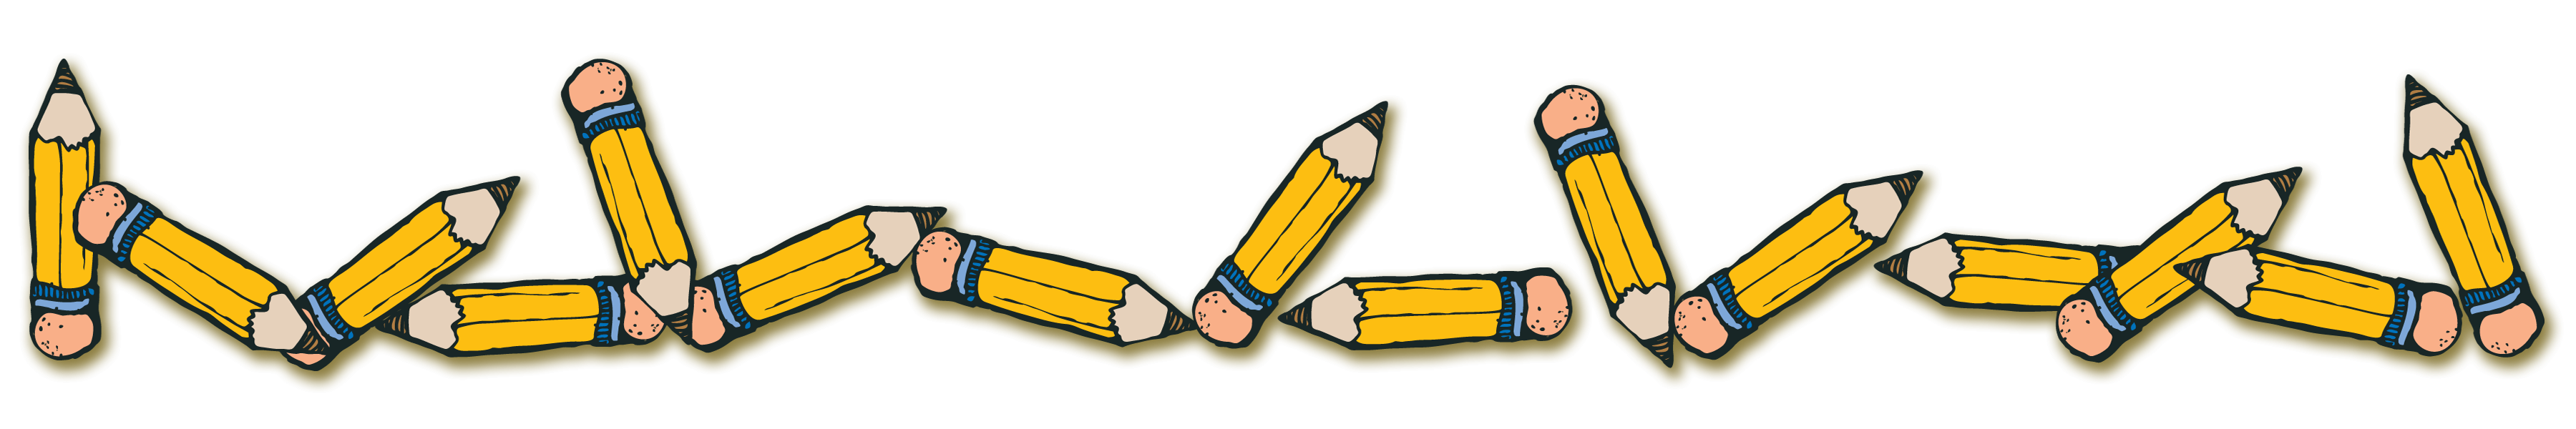 School page border clipart free 47 Free School Supplies Clipart - Cliparting.com free